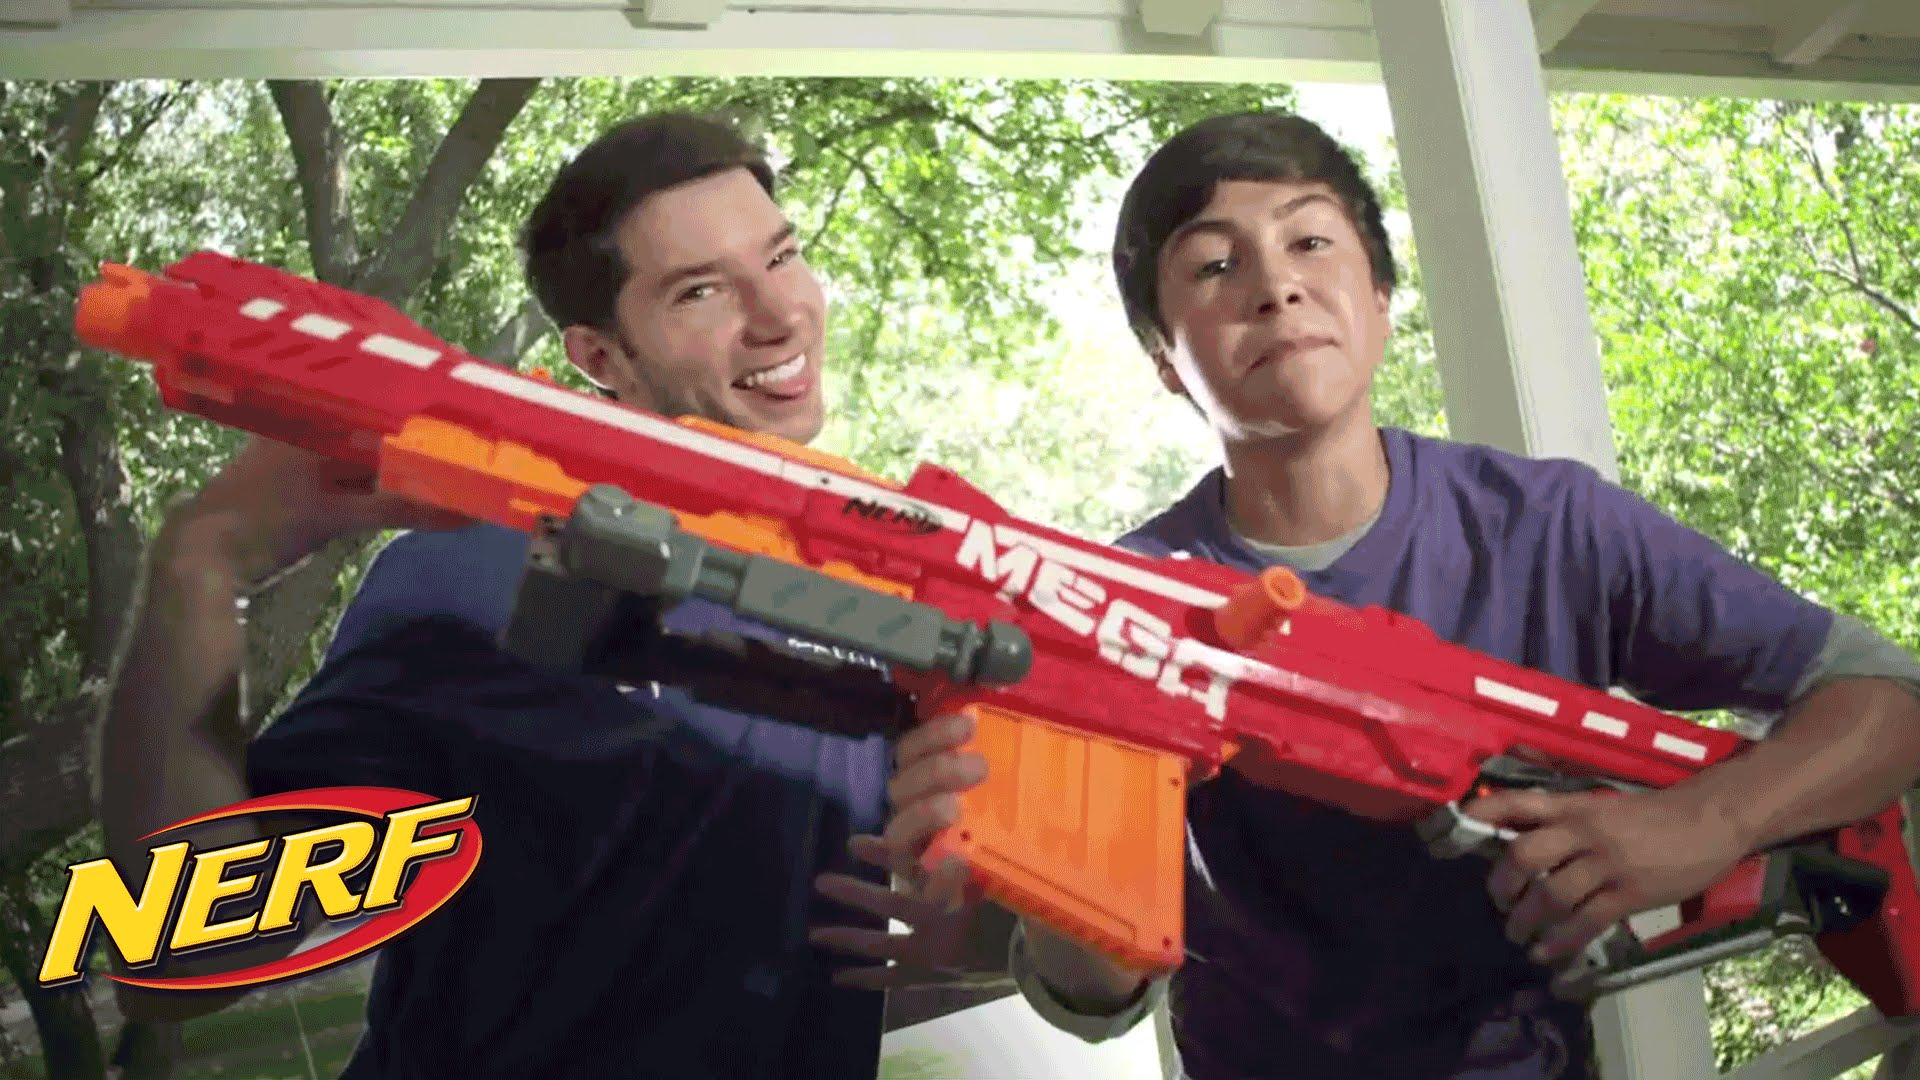 man fined for shooting mcdonald s employees with nerf gun over